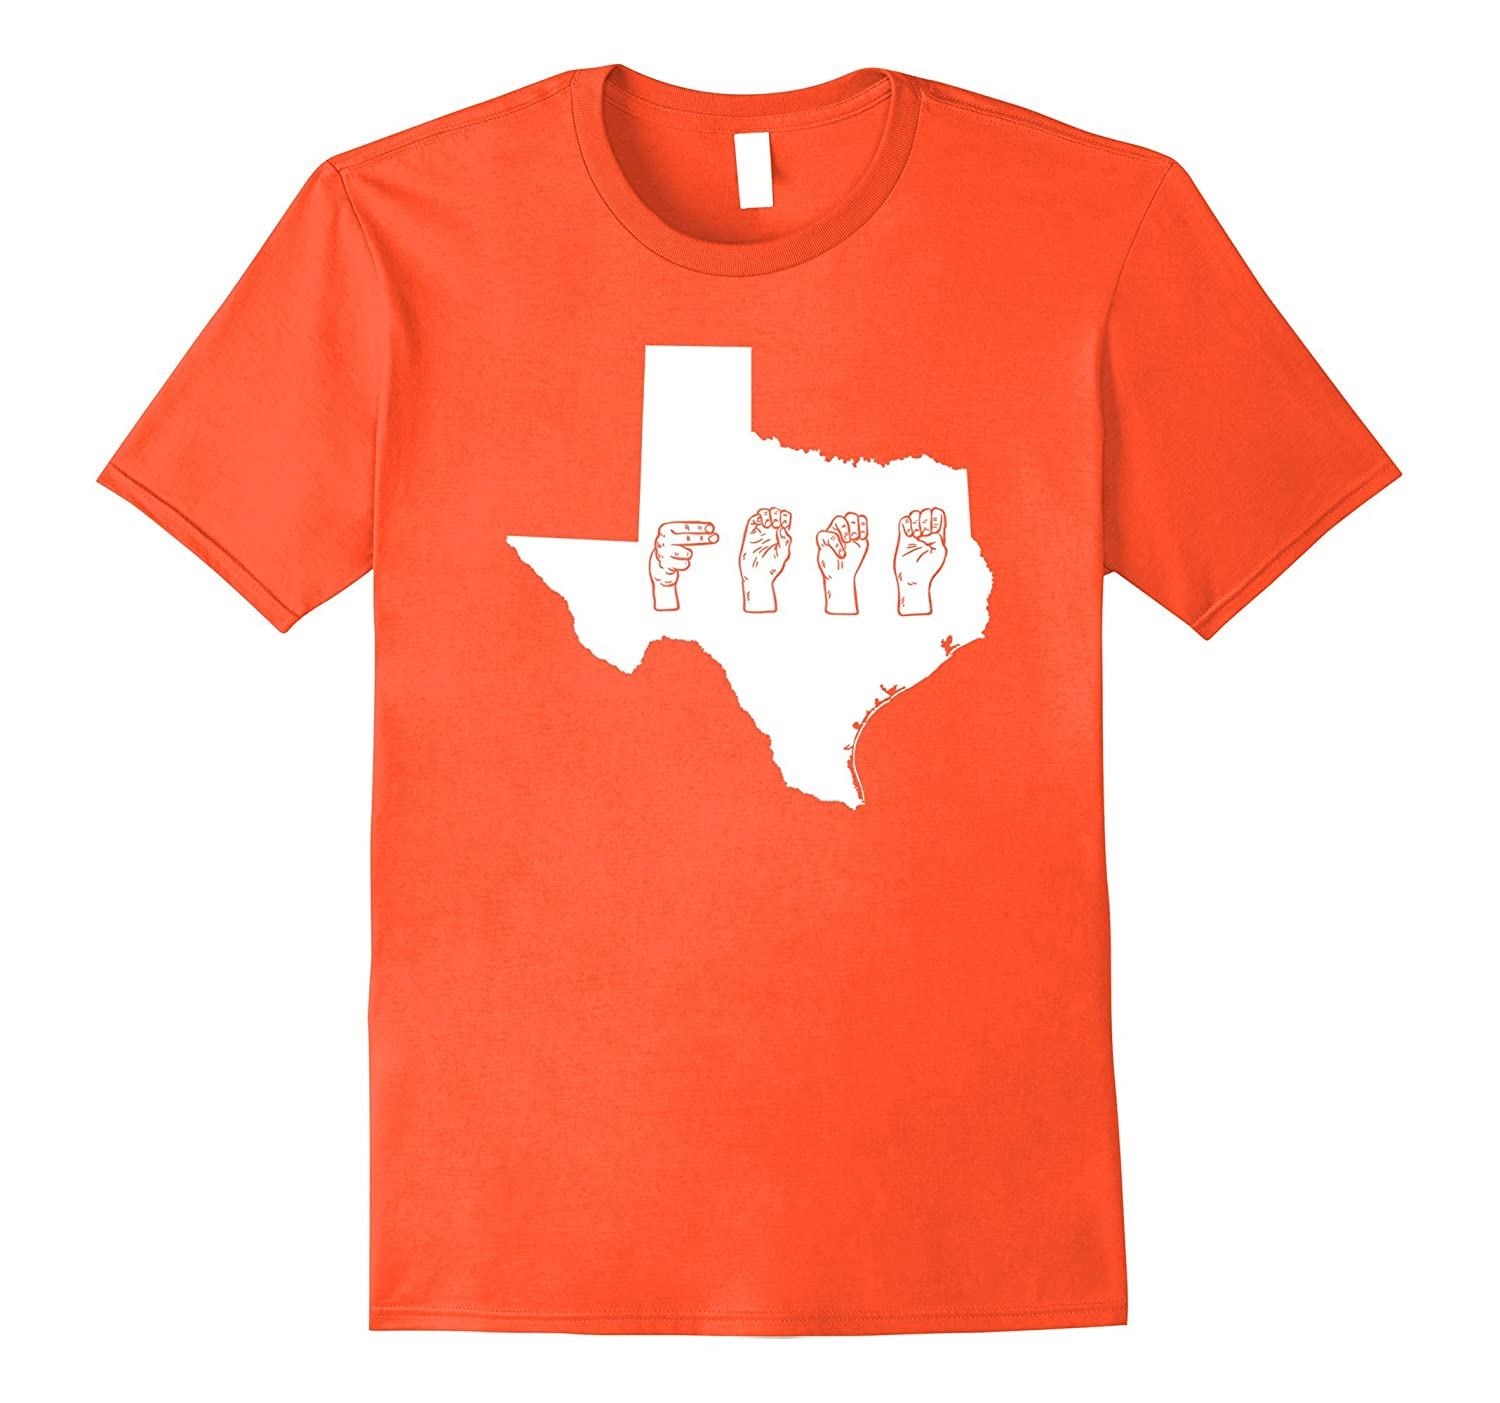 d036d7373c Texas Home state ASL sign language fingerspelling tshirt-ANZ ...